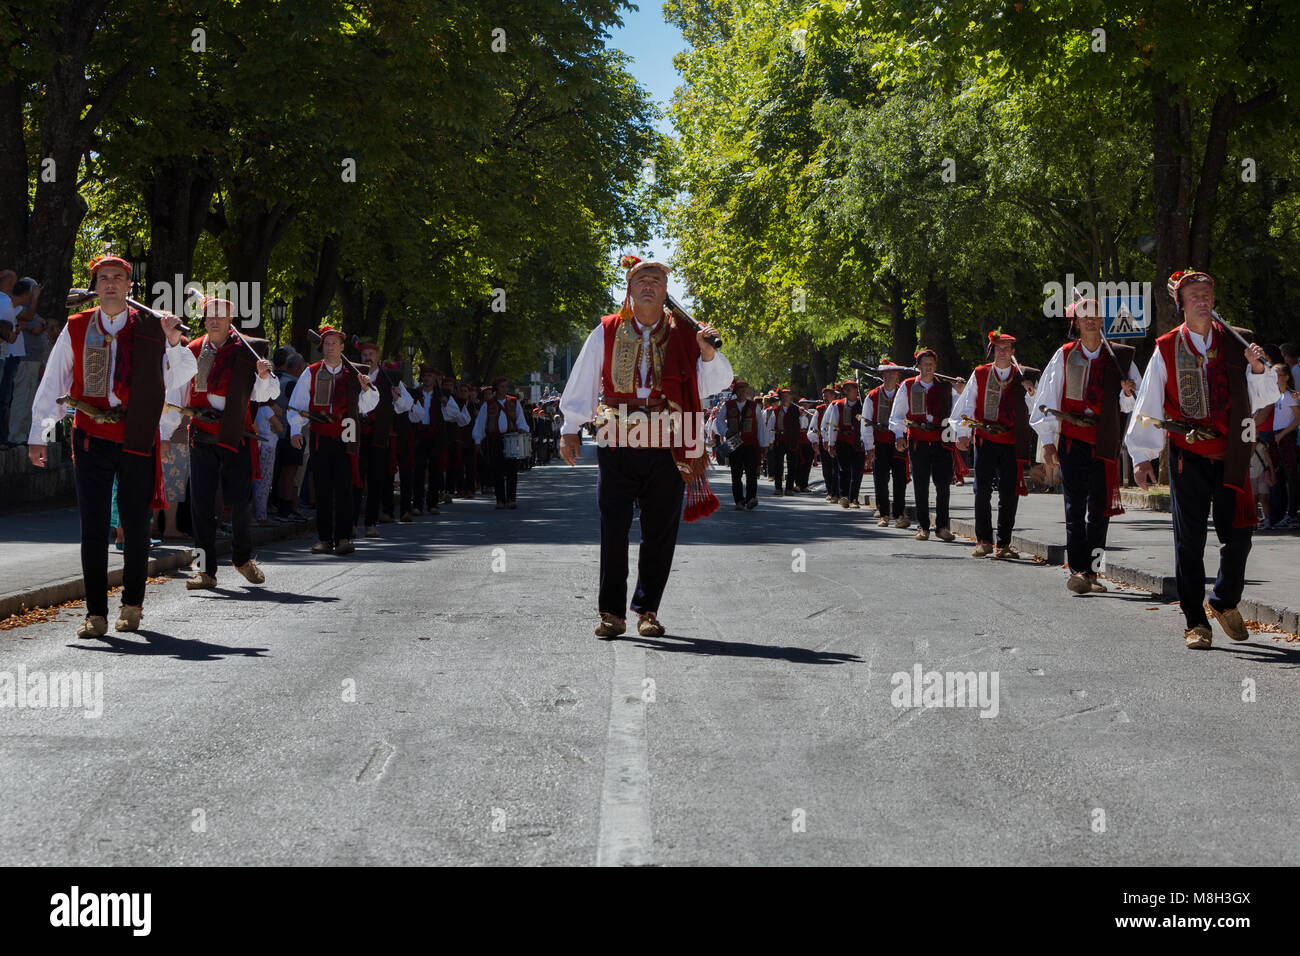 Alkar's squires marchin during Miraculous Lady of Sinj procession, Croatia - Stock Image